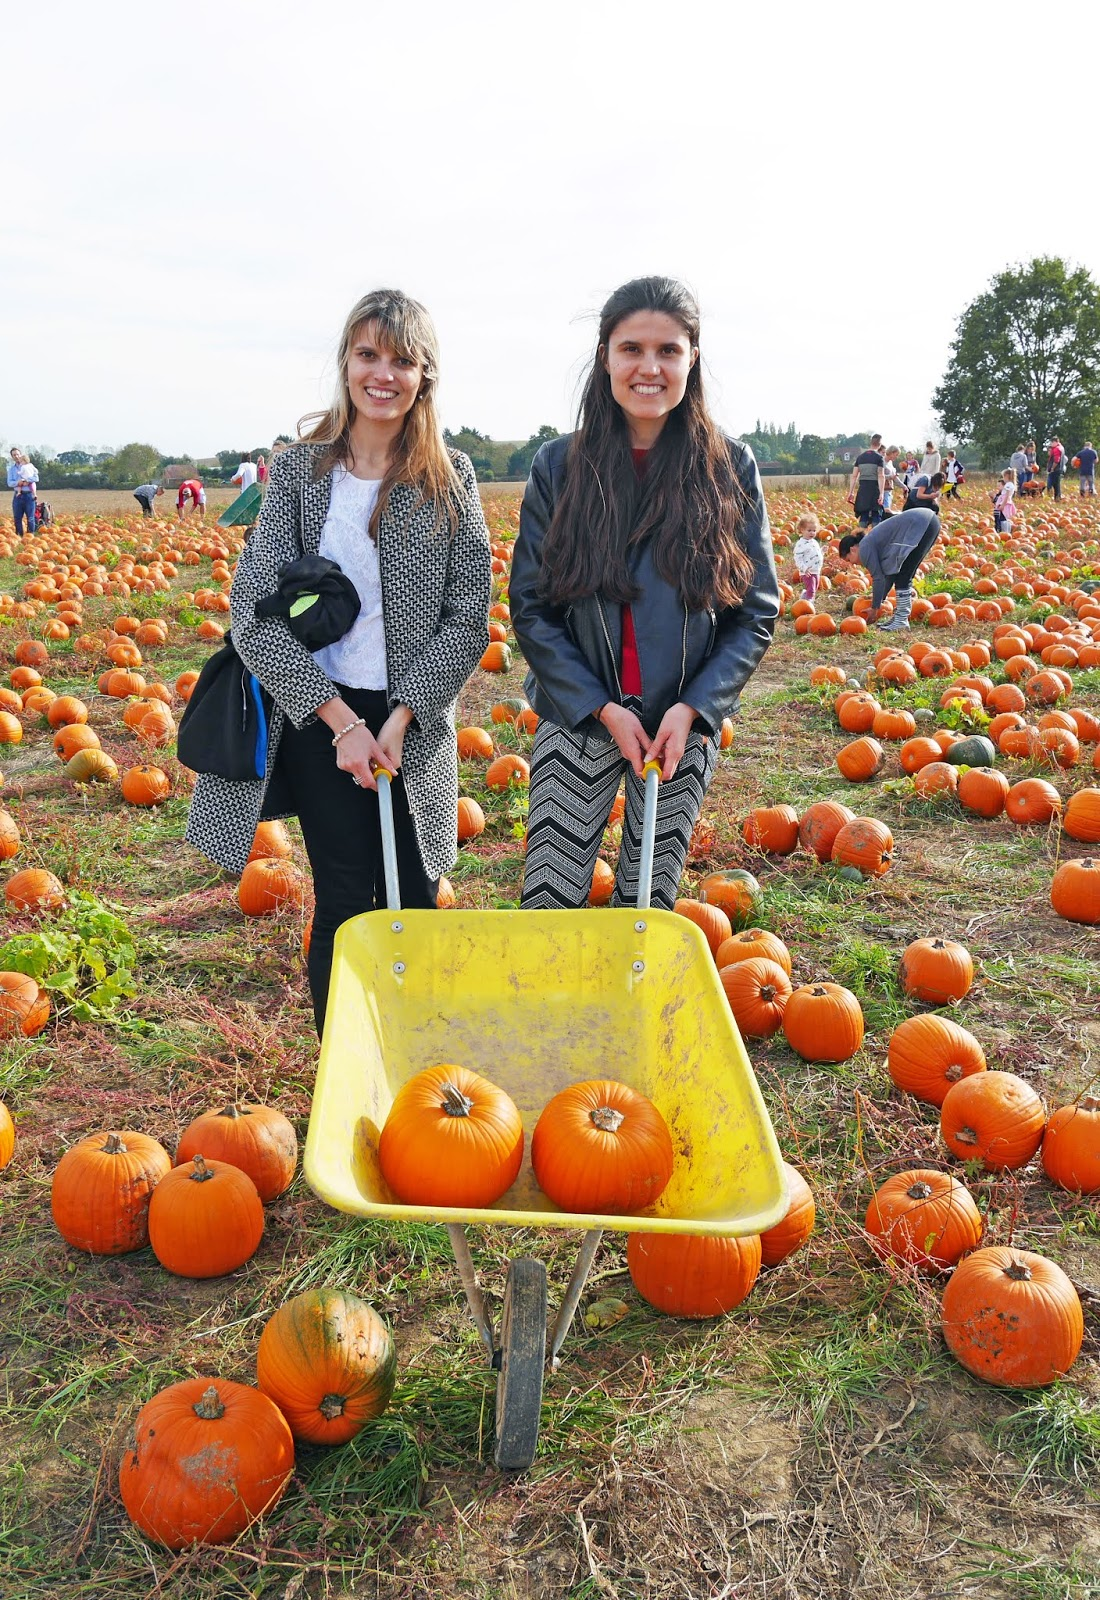 Kat Last and Steph at Pick Your Own Pumpkin in Sevington, Ashford